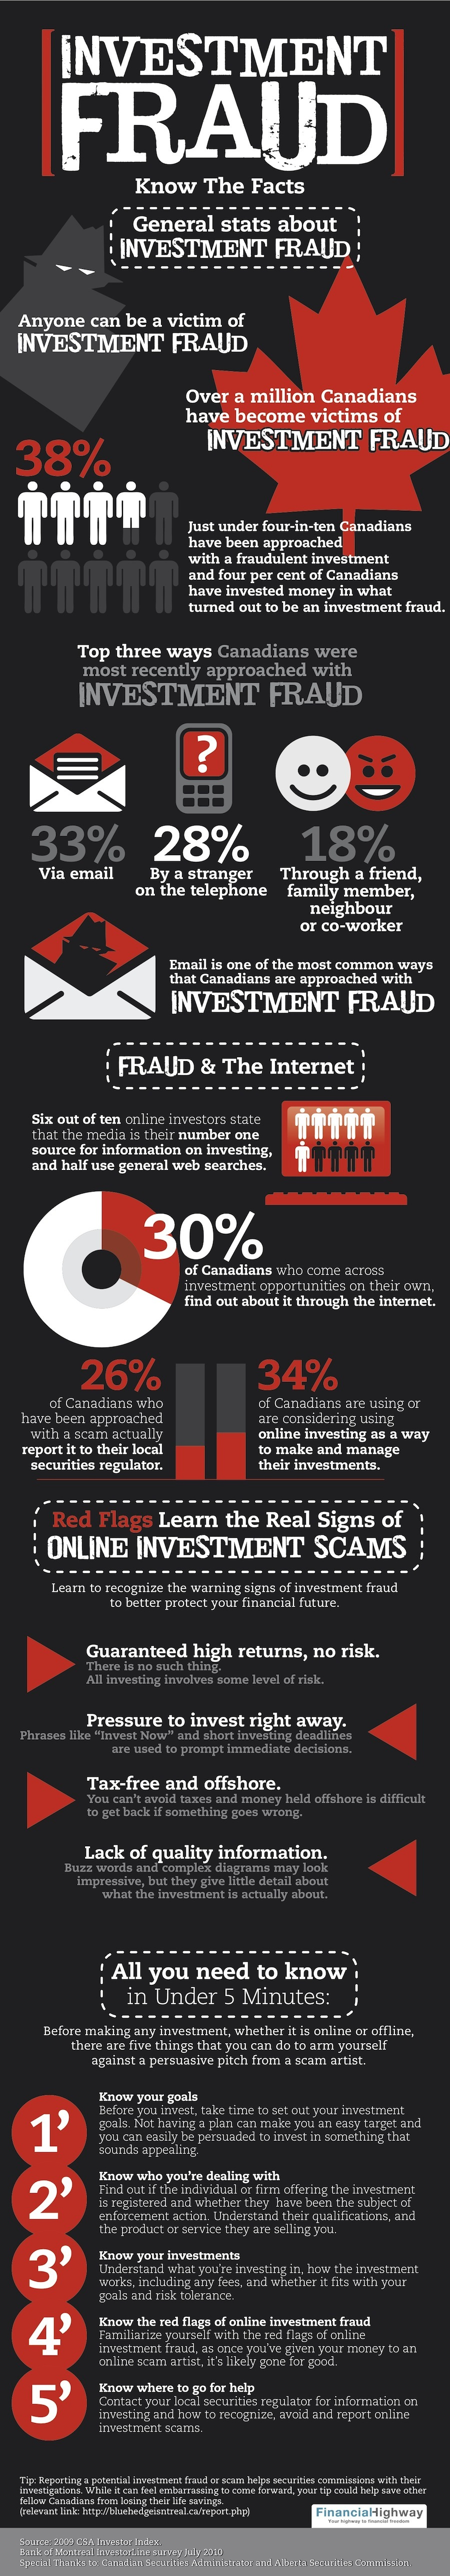 Investment fraud infographic